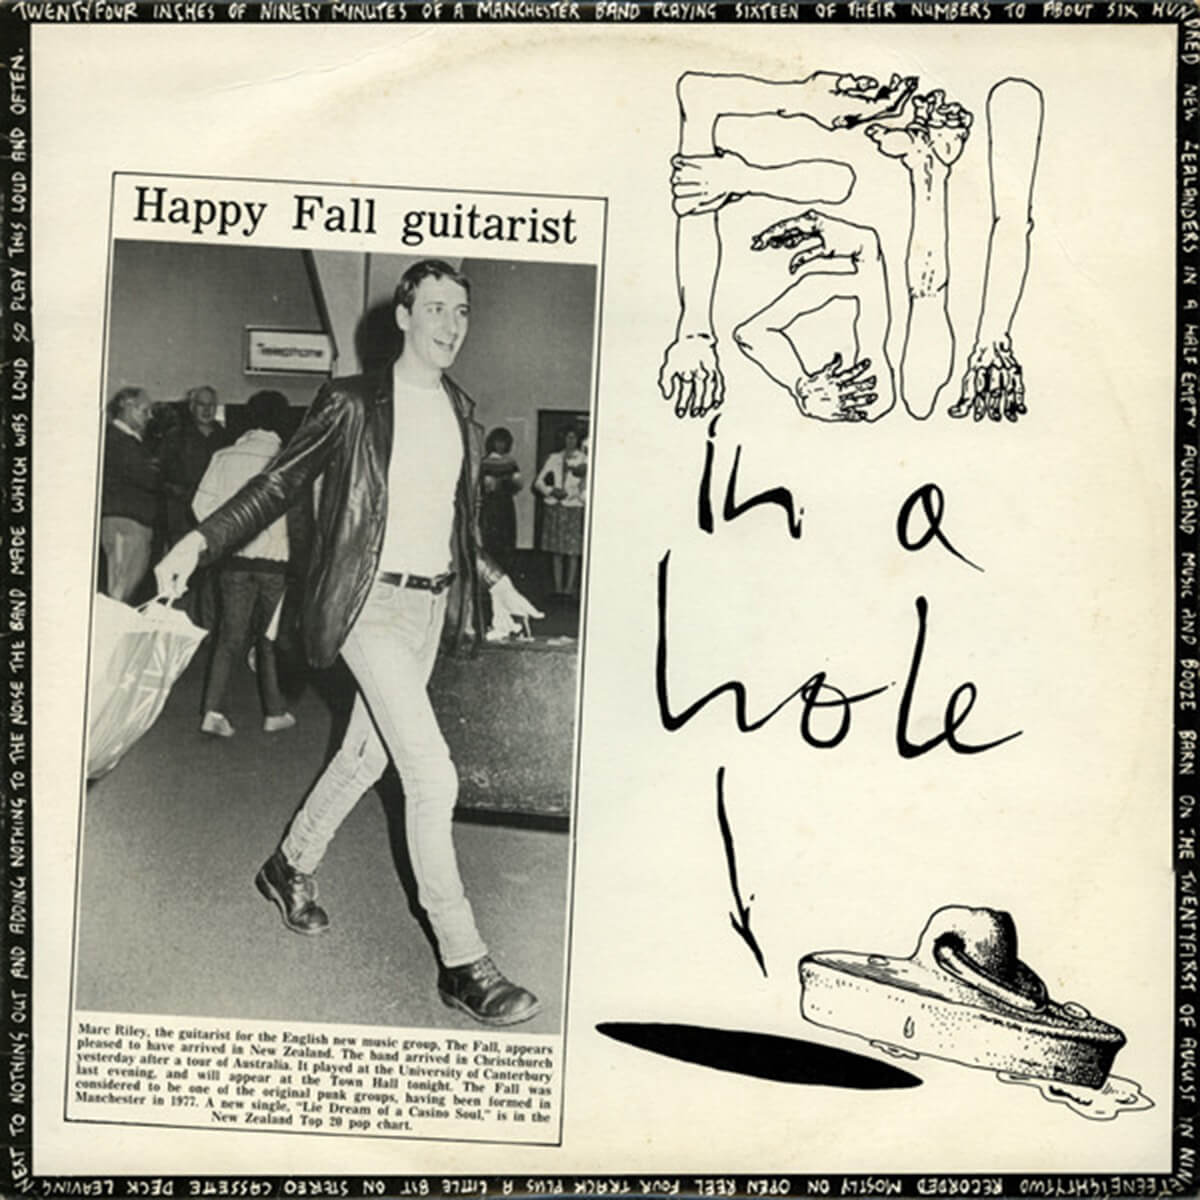 The Fall's <em>Fall In A Hole</em>, originally released by New Zealand's Flying Nun label.